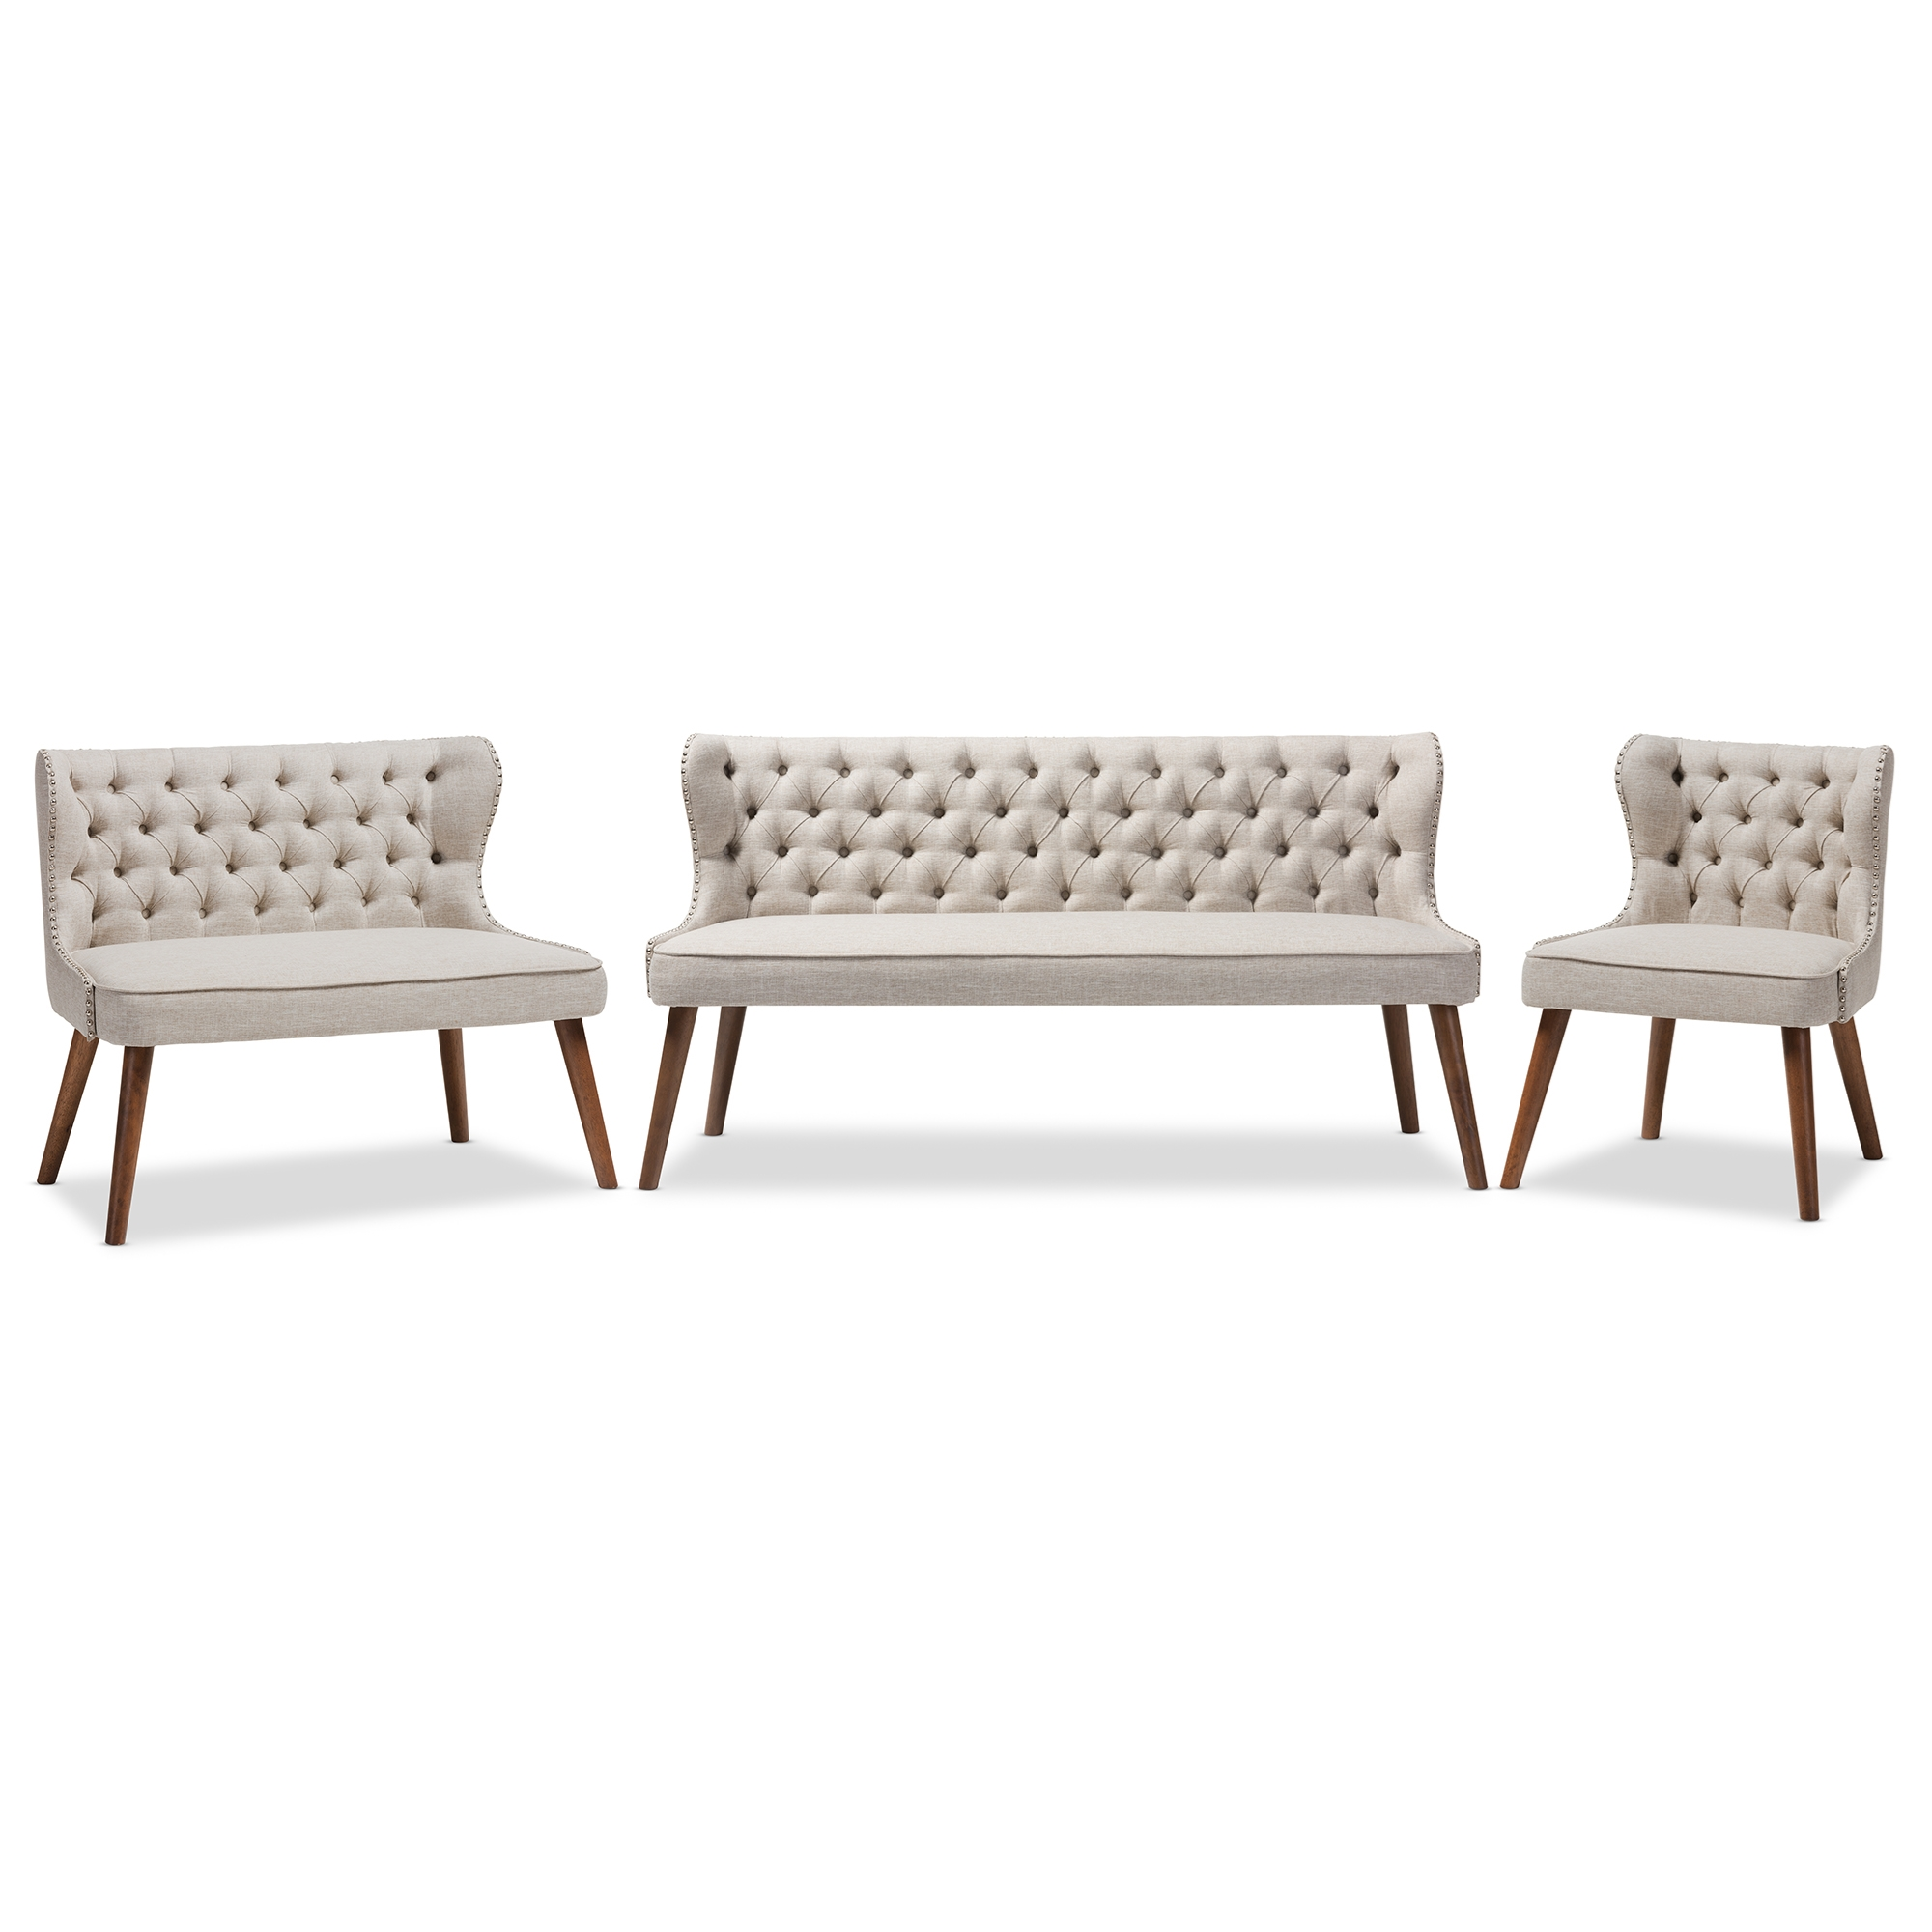 commercial sofas and chairs wedding ribbon baxton studio wholesale sofa set living room furniture scarlett mid century modern brown wood light beige fabric upholstered button tufting with nail heads trim livingroom 3 piece